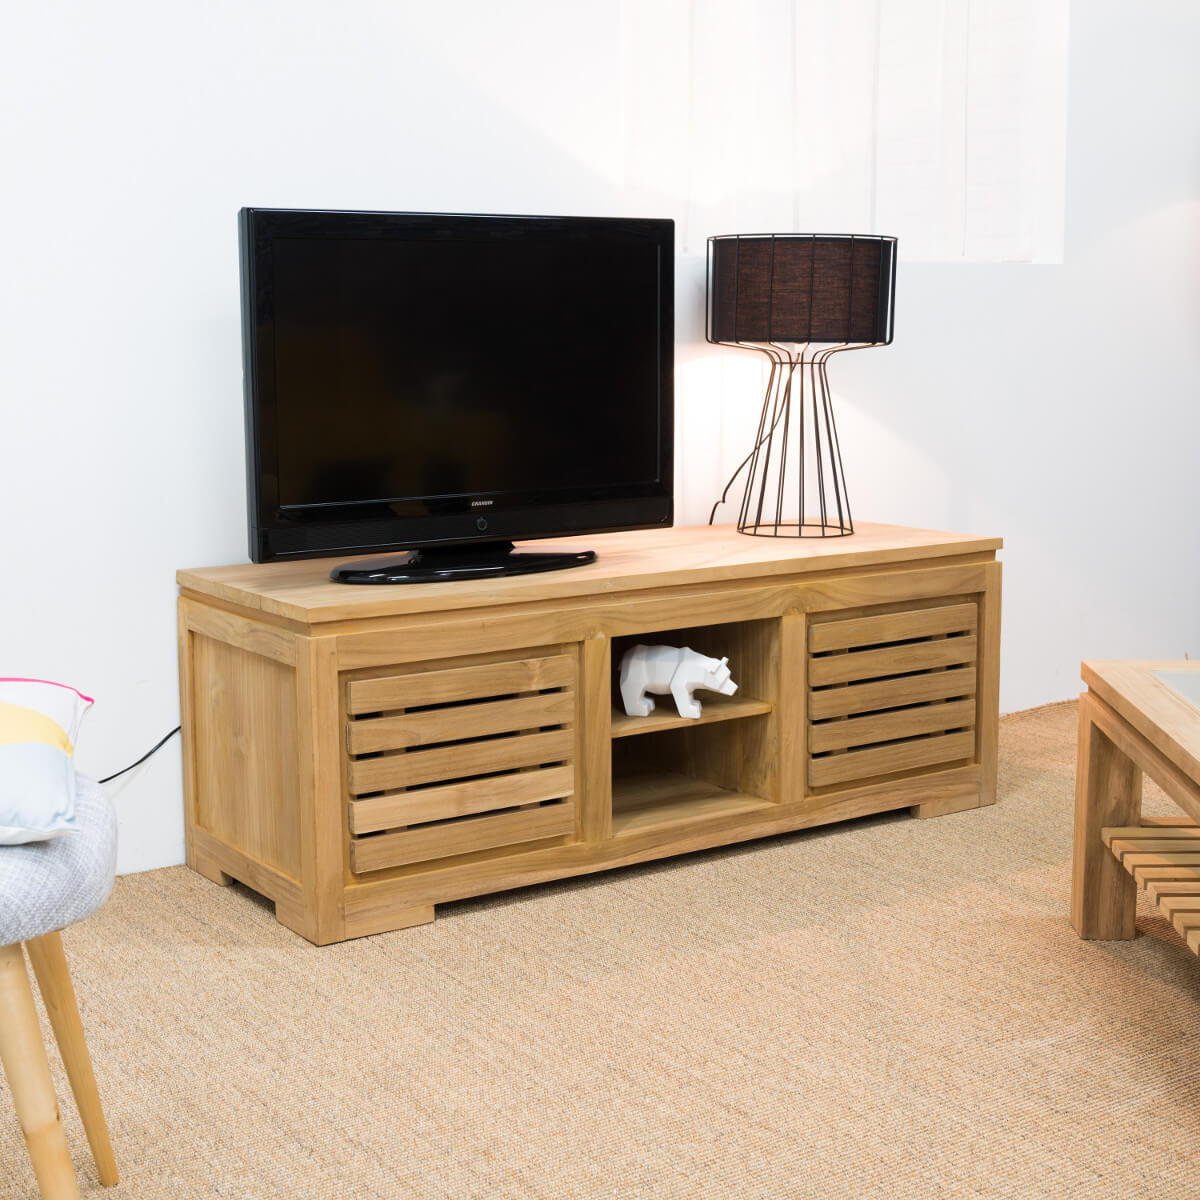 Meuble Tv En Teck Promo - Meuble Tv Teck Meuble Tv Bois Naturel Rectangle Zen 140 Cm[mjhdah]https://www.lecoinmontagne.com/12854-thickbox_default/meuble-tv-2-tiroirs-teck-brosse.jpg